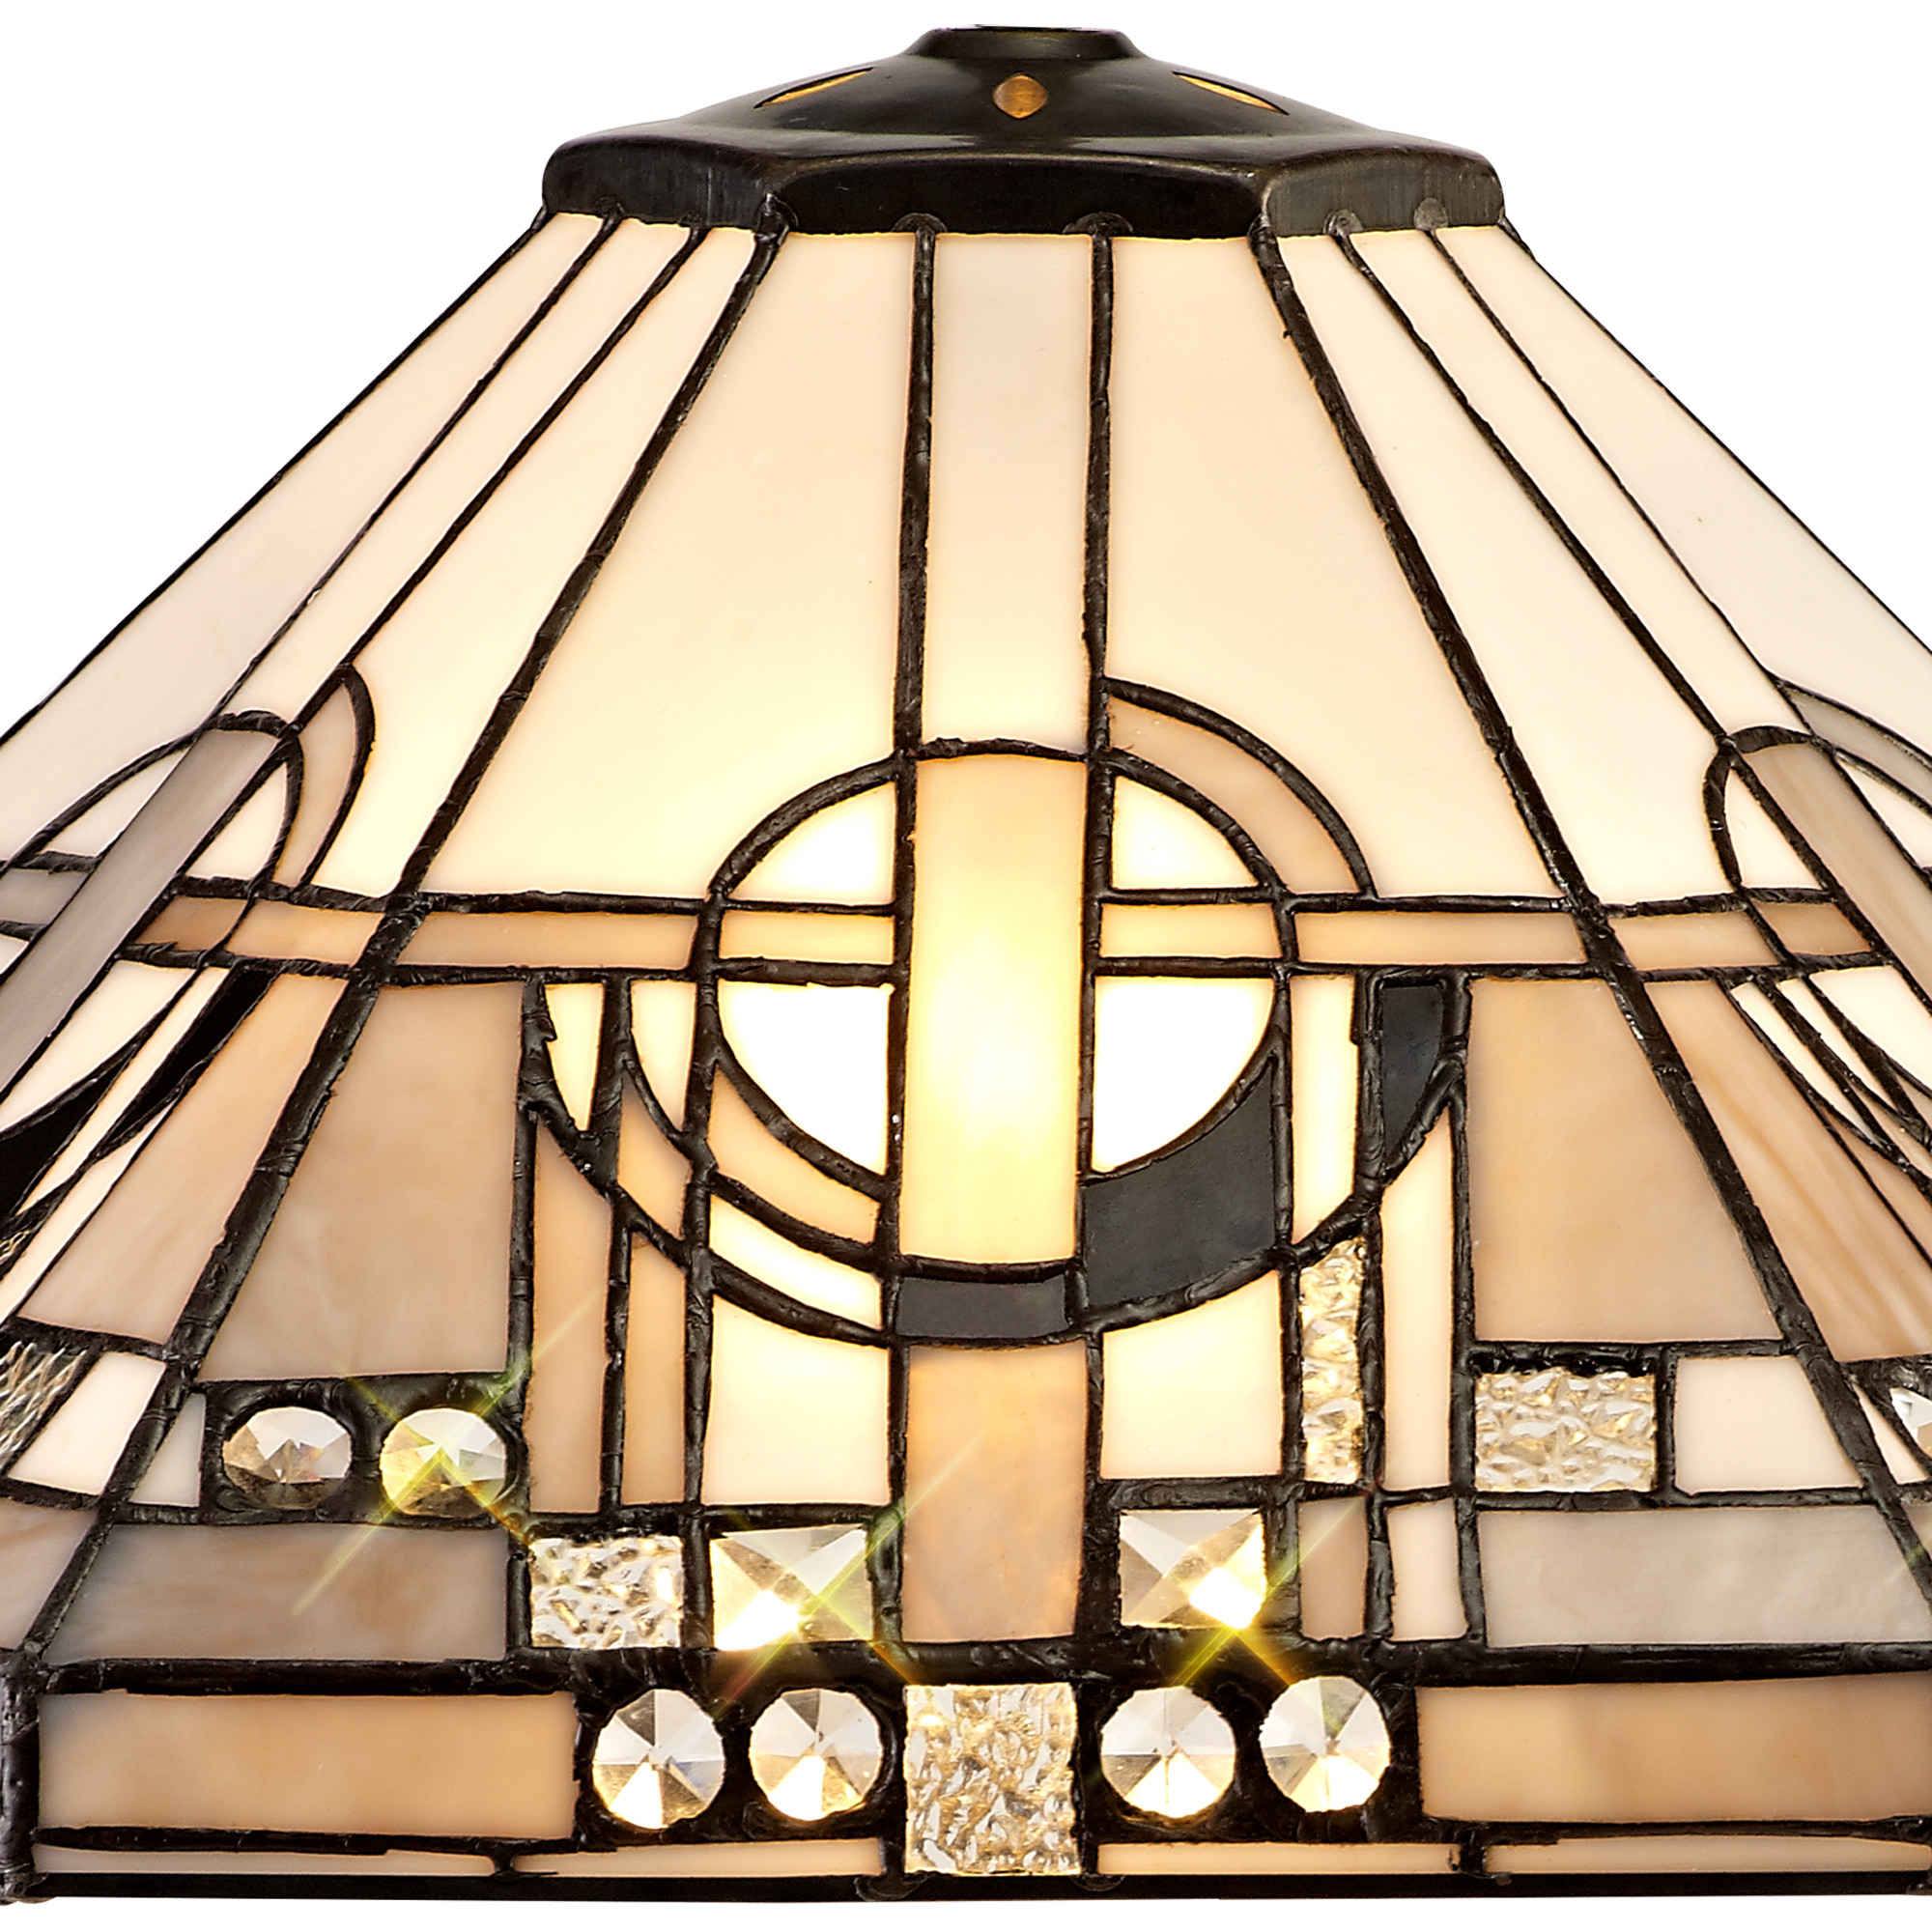 3 Light Downlighter Pendant E27 With 40cm Tiffany Shade, White/Grey/Black/Clear Crystal/Aged Antique Brass